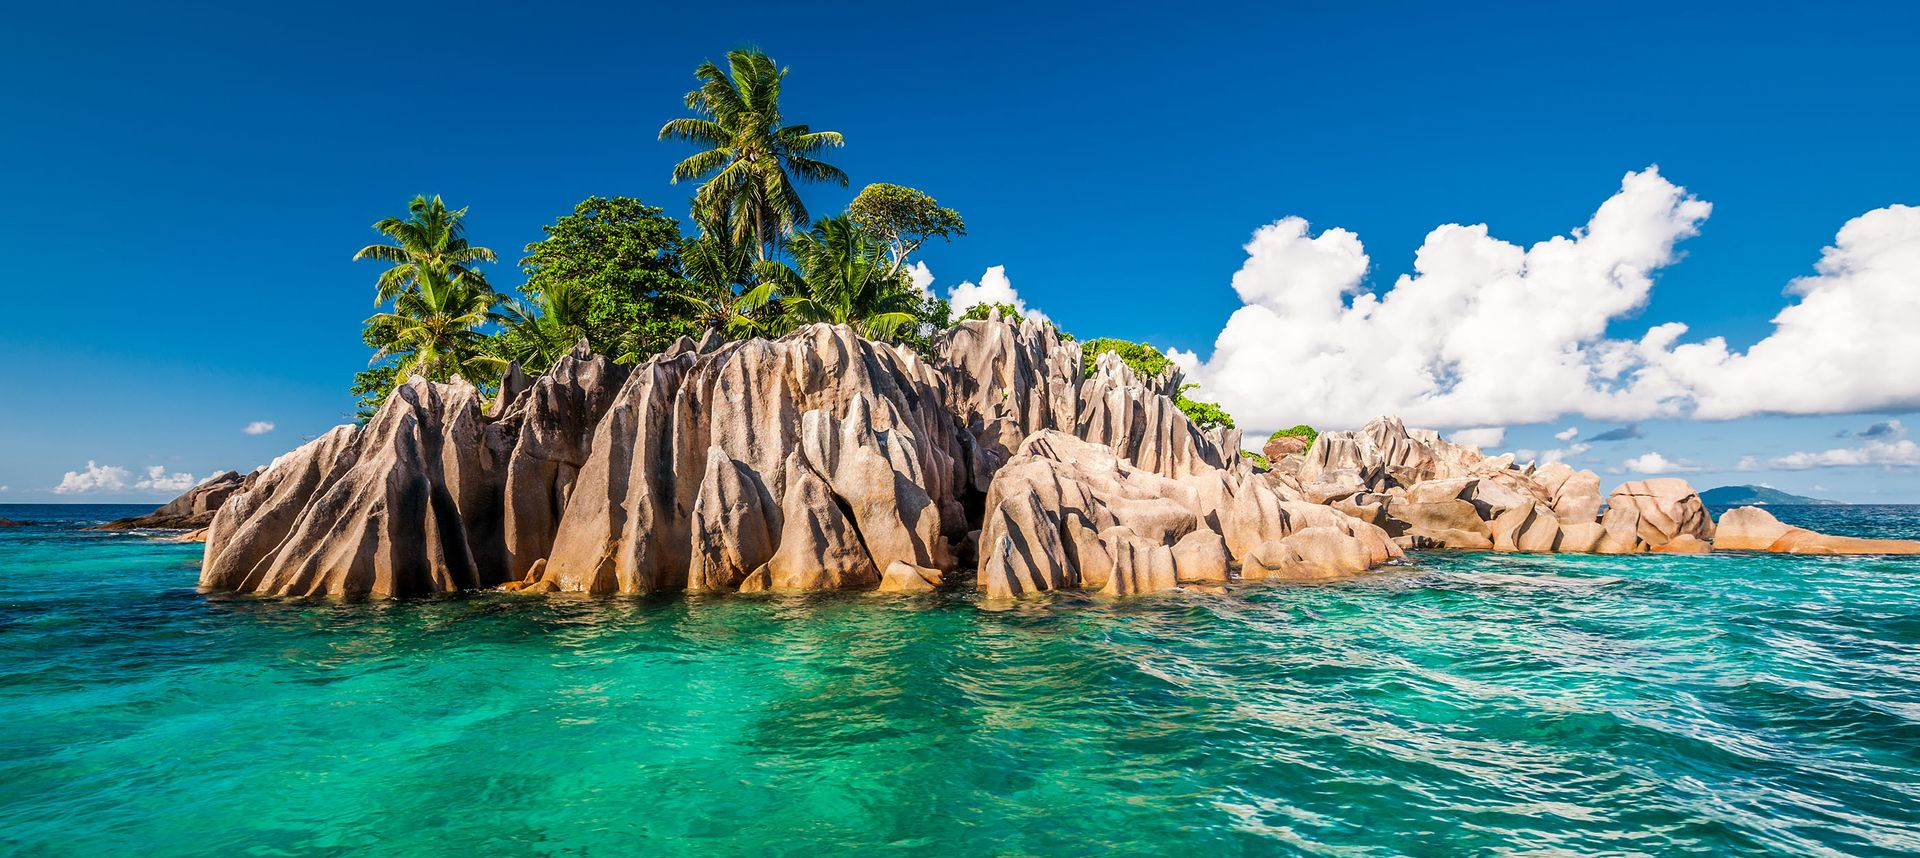 Guide to the best beaches and islands in the world (Shutterstock)